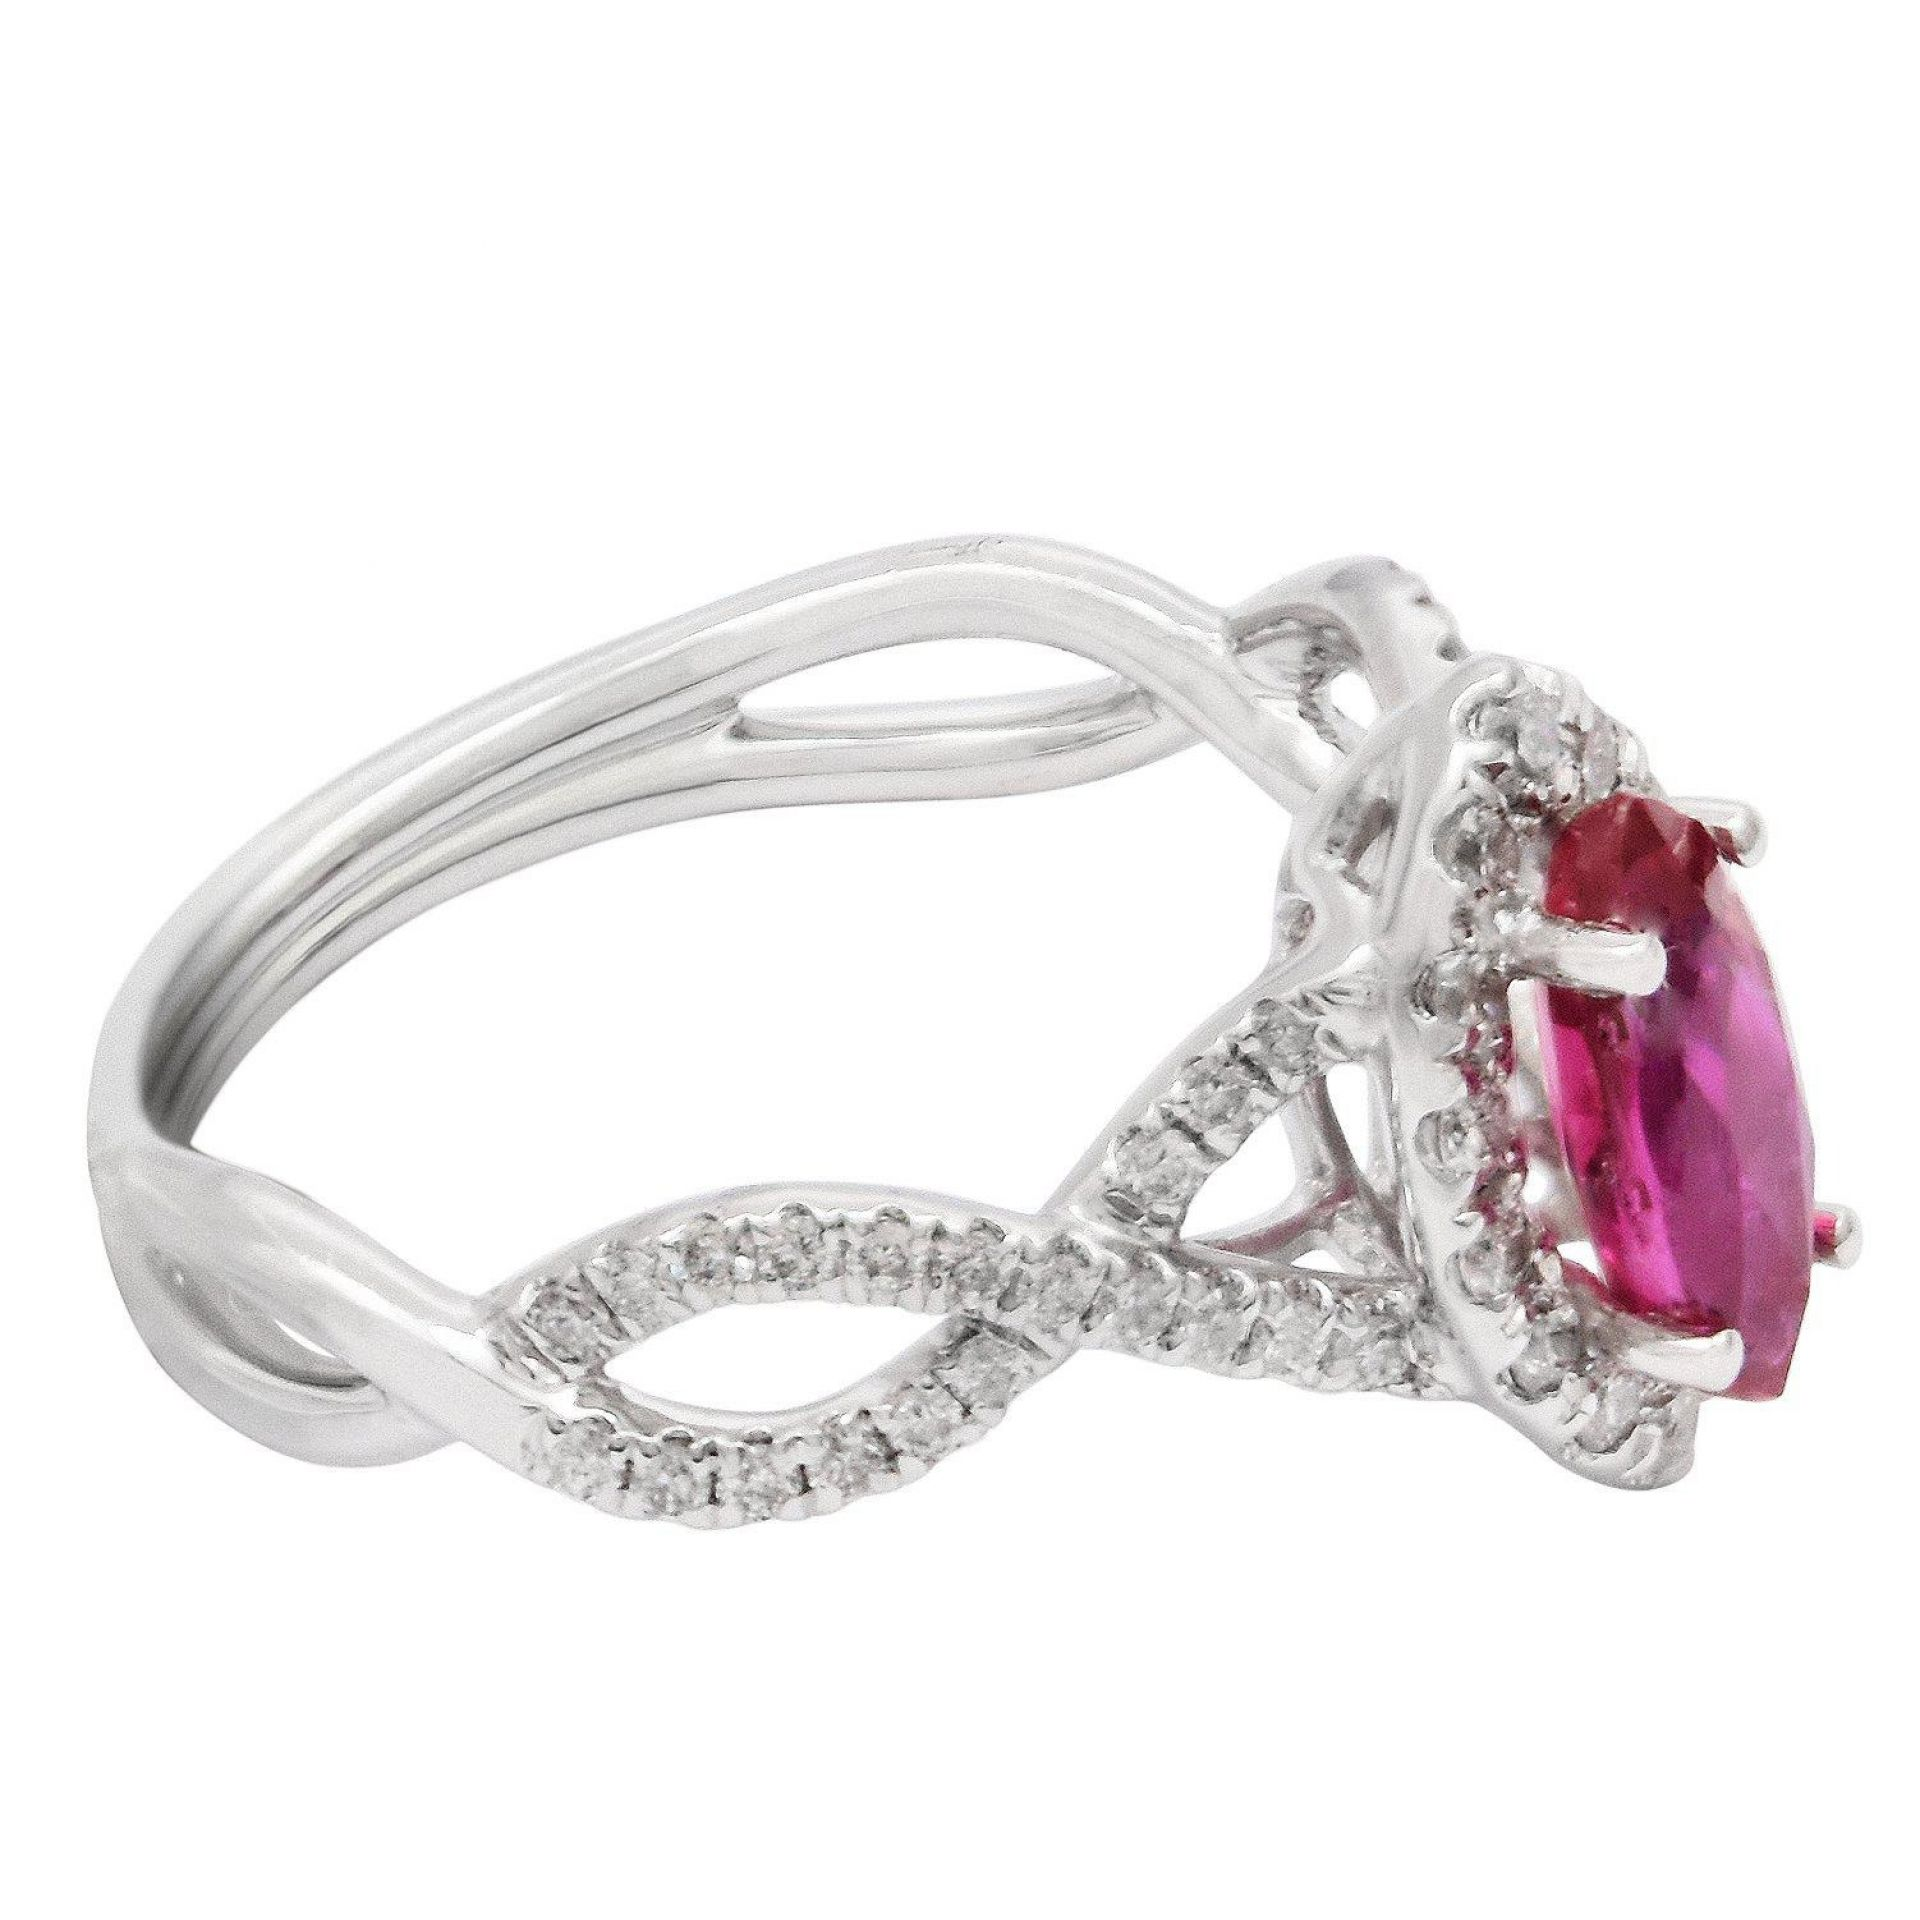 1.02ct UNHEATED Ruby and 0.43ctw Diamond 18KT White Gold Ring